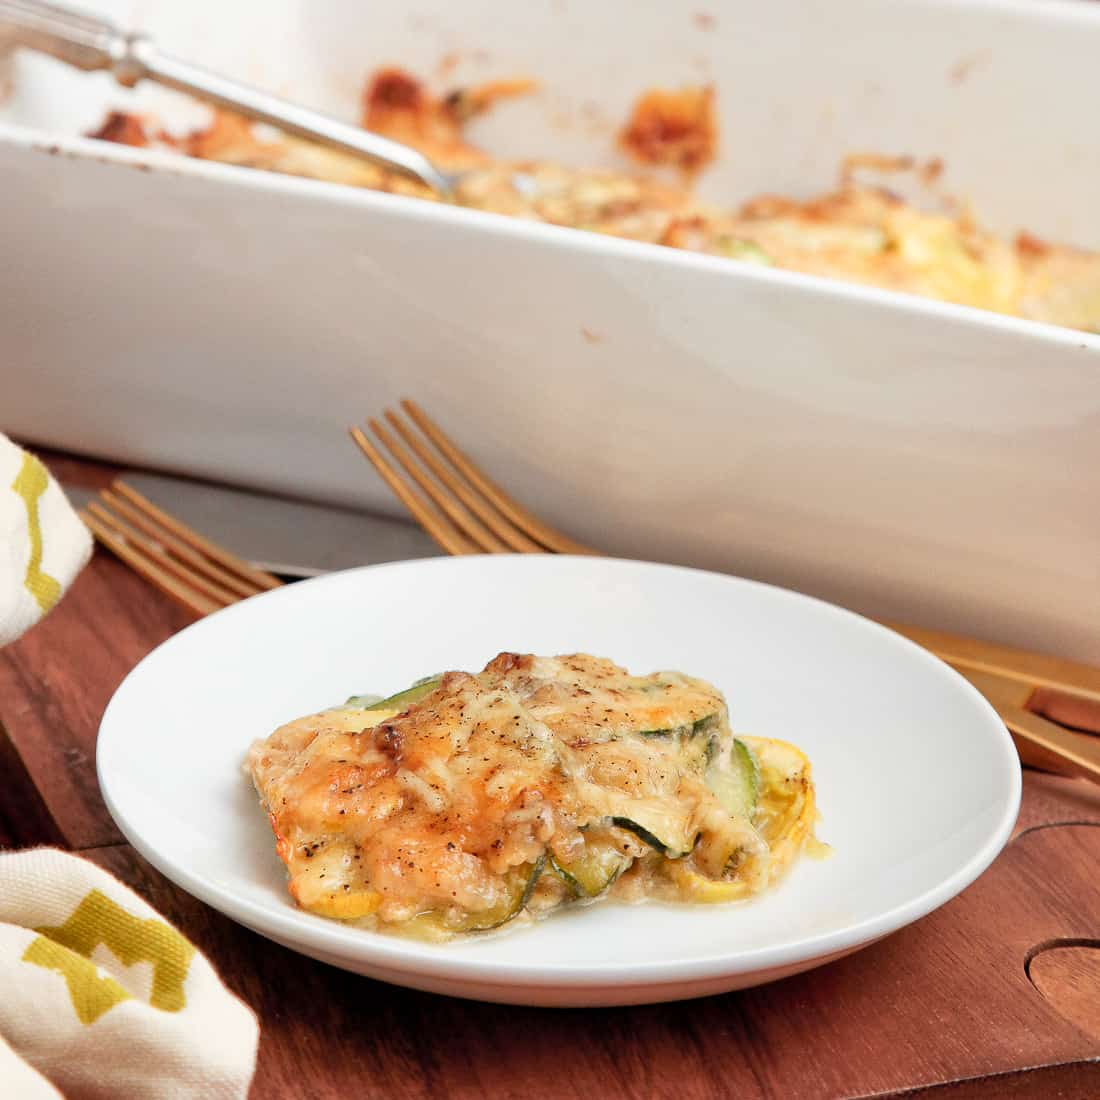 Summer Squash Gratin with Nutmeg Béchamel - Snixy Kitchen